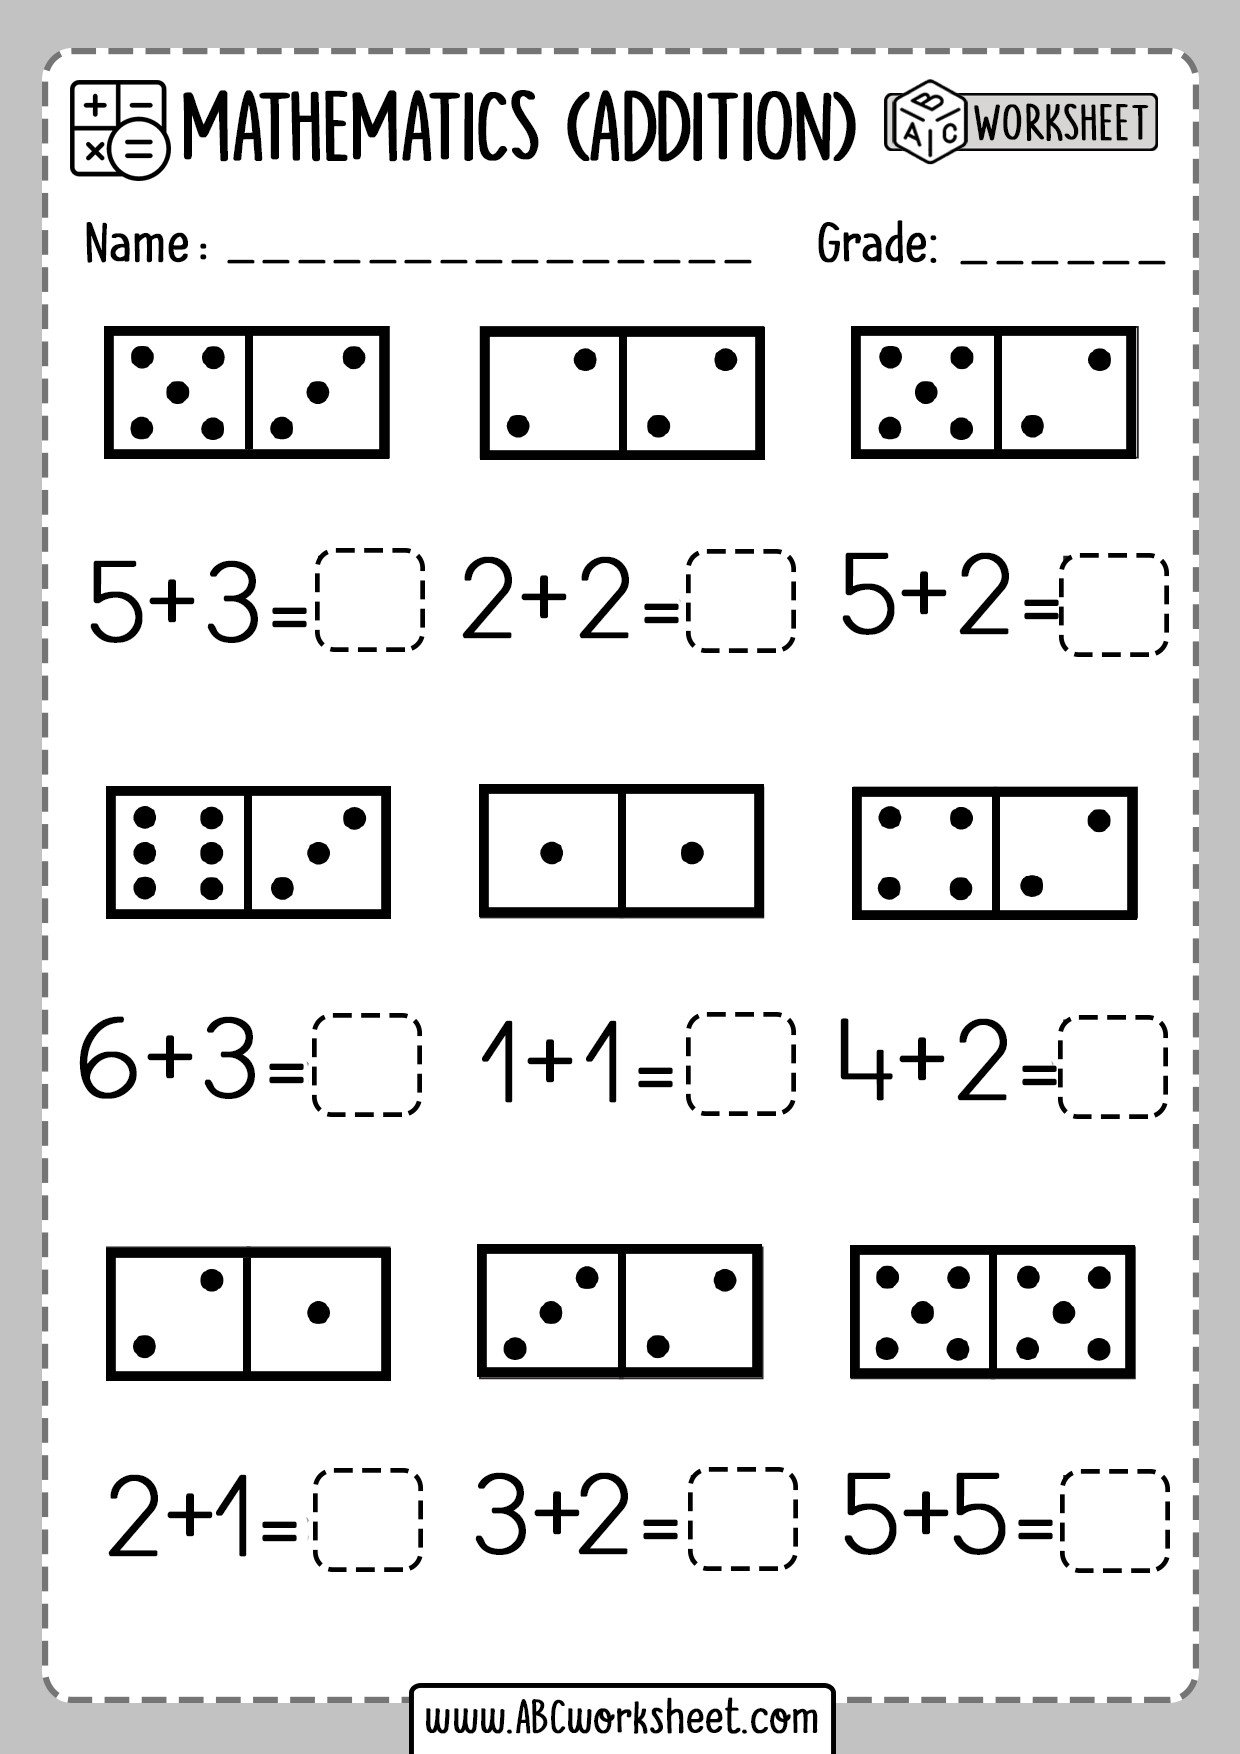 Kindergarten Addition Worksheets Free Worksheets Worksheets Printable Kindergartenath Free